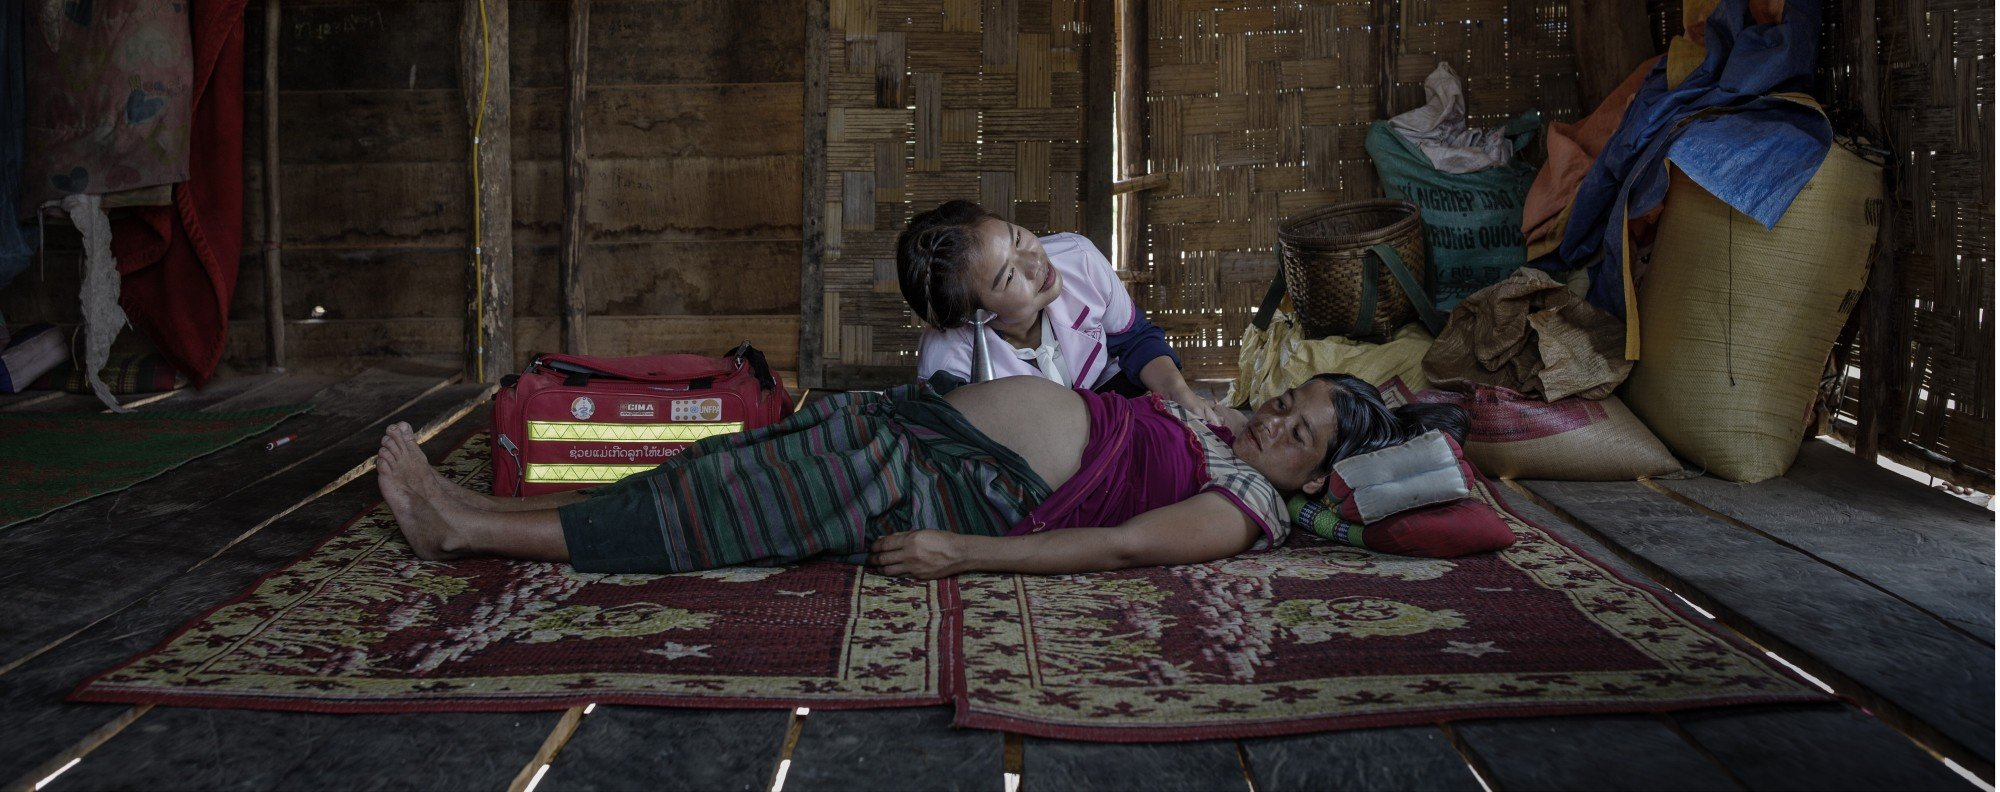 Midwife Phanmaha Nongthilath examines pregnant Chien in Asing Saneh, Laos.